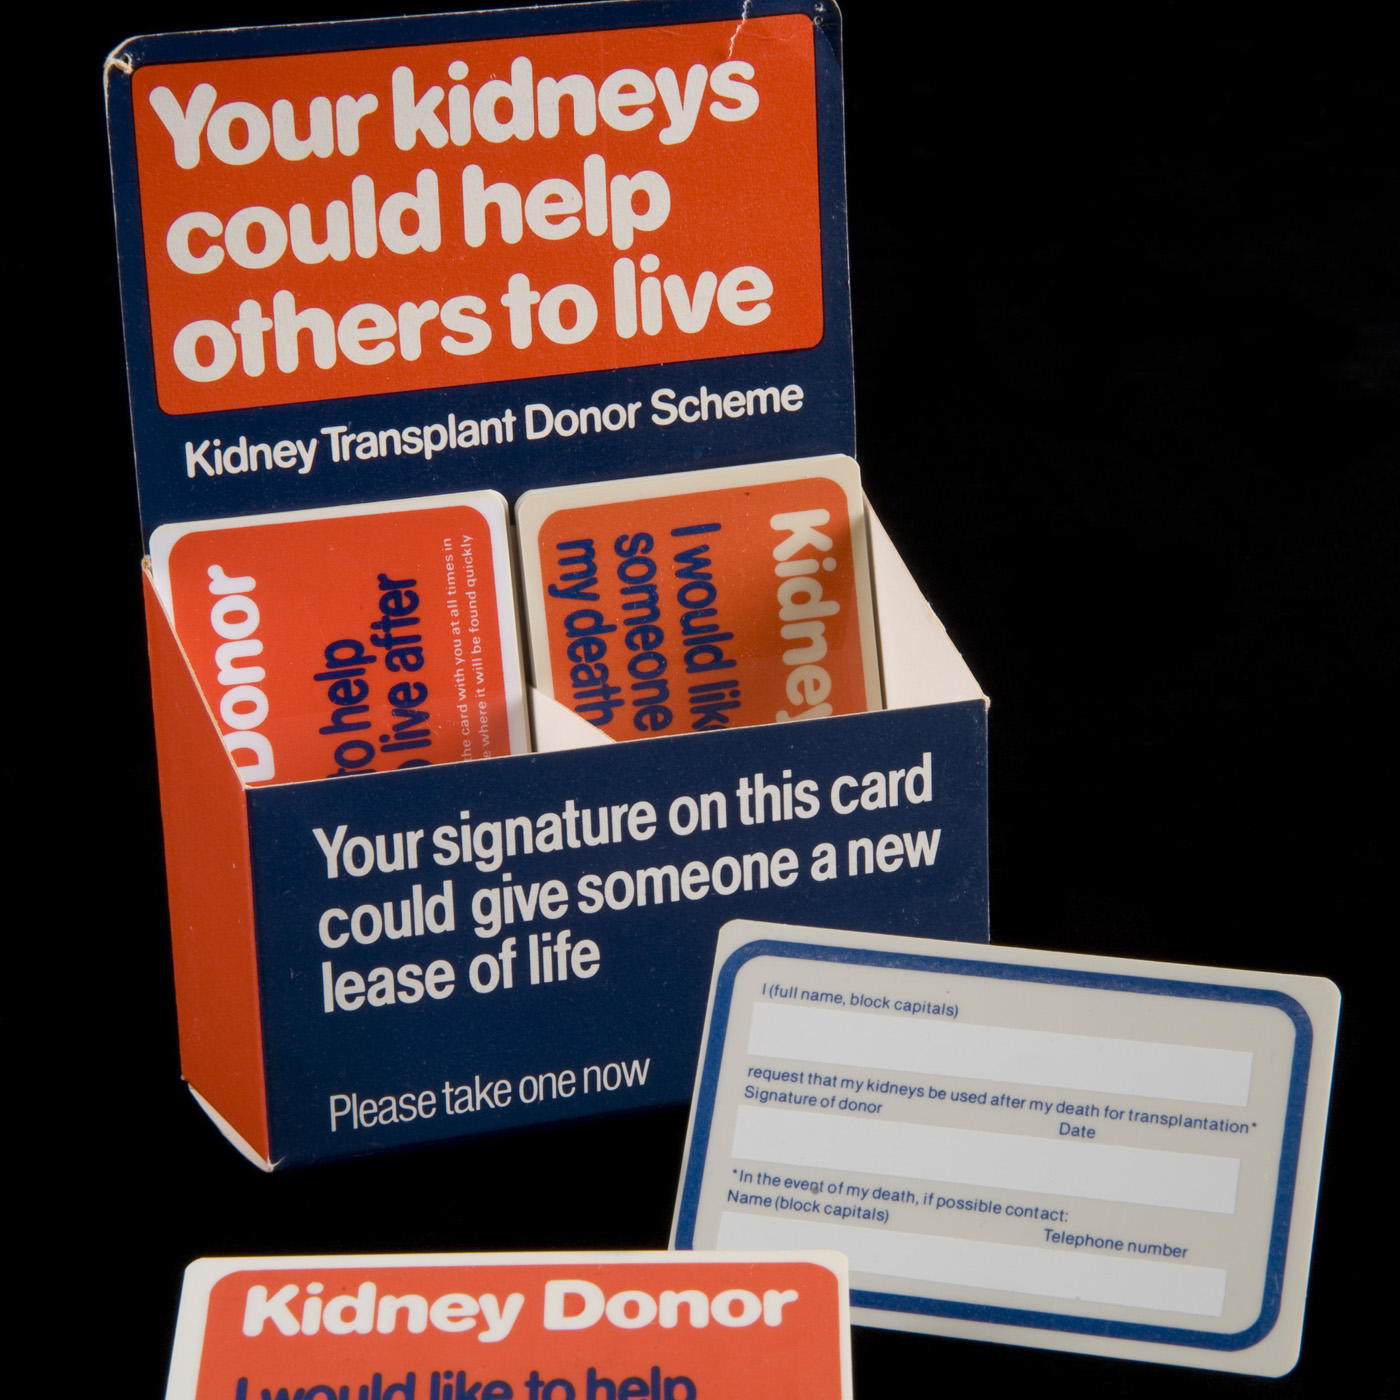 Do You Need That Kidney? Rethinking the Ethics of Organ Transplants